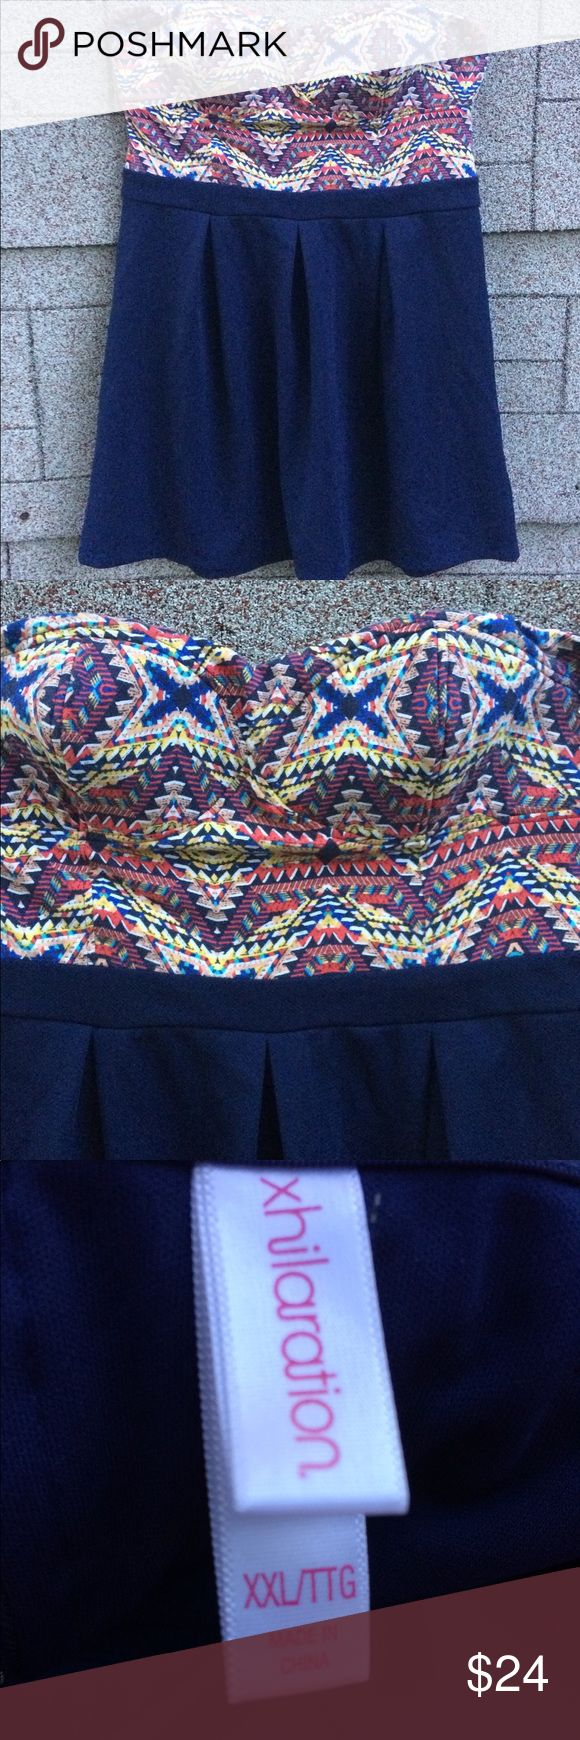 Xhilaration Plus Size Navy Blue Design Dress XXL Colorful Plus Size Mini Dress! Navy blue in color with upper portion of dress featuring cute designs of yellow, blue, & pink! Would be super cute paired with some heels or sandals! **Size XXL. Lightly worn. No holes, tears, stains, etc.** Xhilaration Dresses Mini